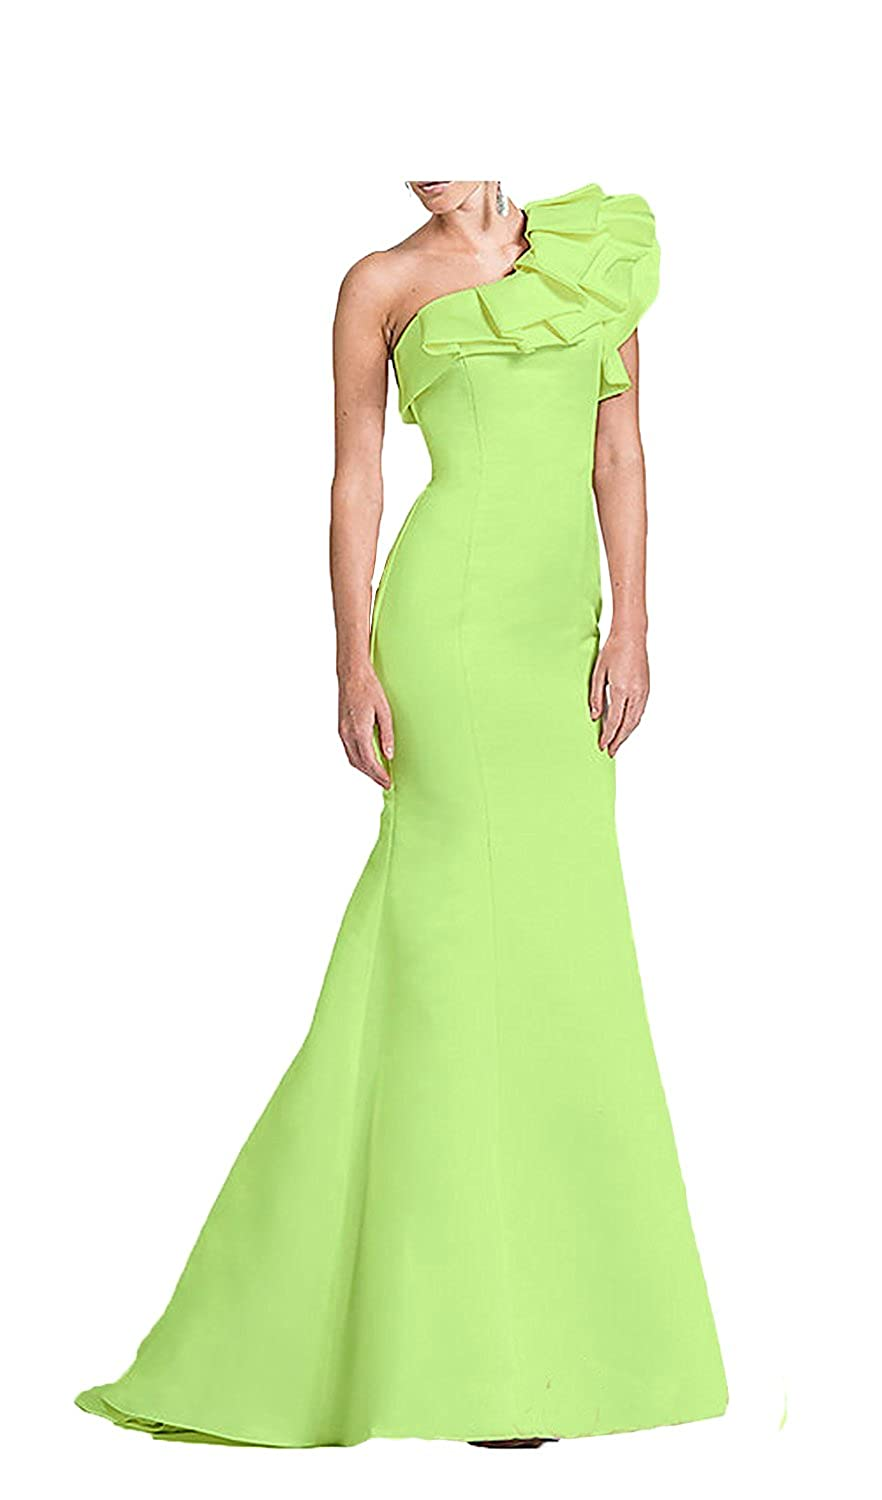 df011c79e196e Material: Satin;Feature:One shoulder;Mermaid;Ruffles;Sweep train. Fully  lined with built-in bra. In order to make dress perfect on you, we suggest  you offer ...